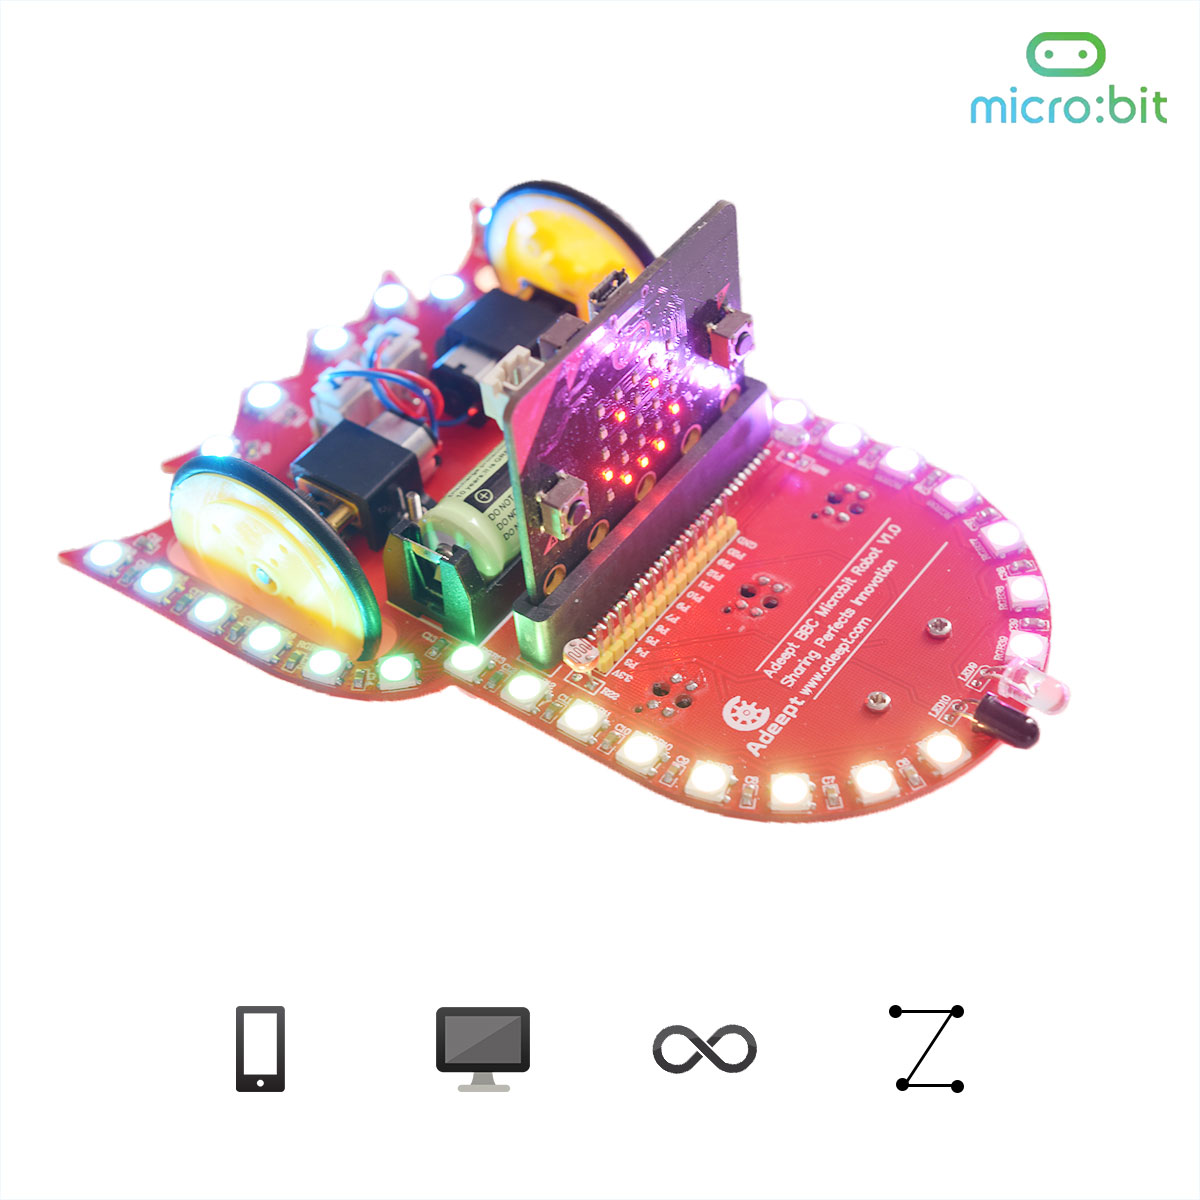 Adeept Starry:bit BBC Micro:bit Smart Robot Car Kit | Programmable STEM Educational Robot Kit with Detailed Projects Tutorial Book